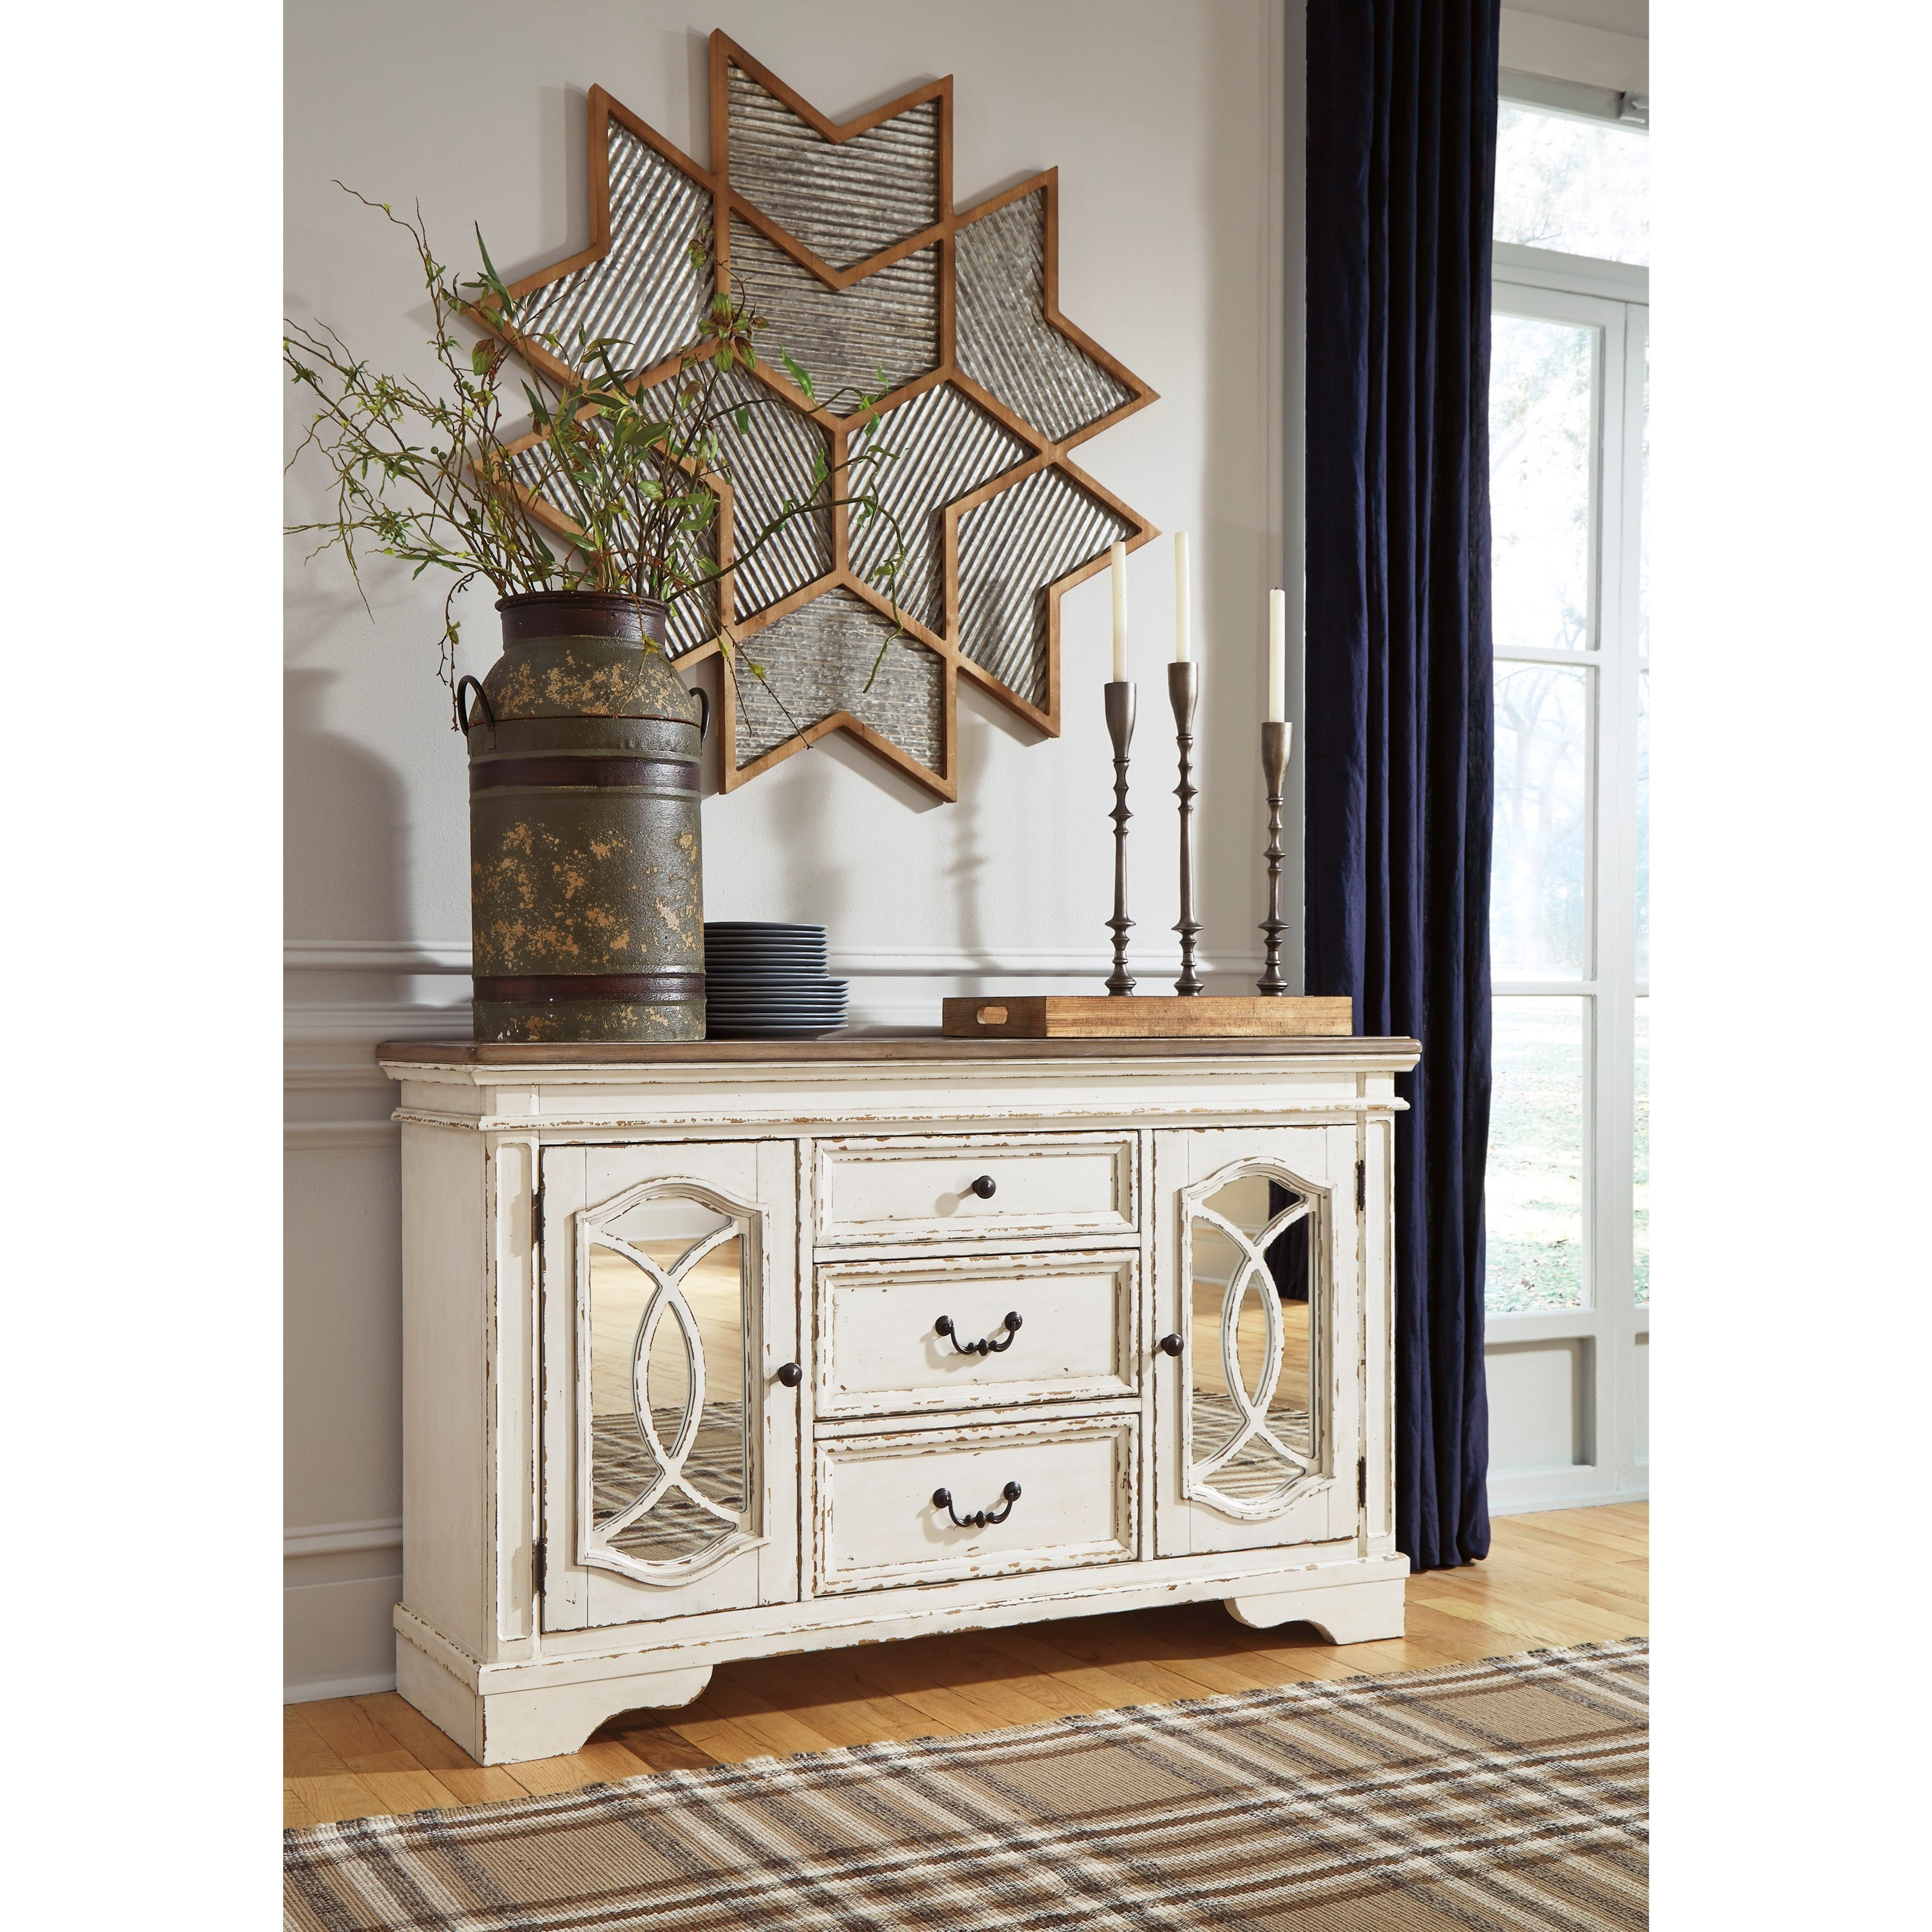 Ashley S Nest Decorating A Dining Room: Signature Design By Ashley Realyn D743-60 3 Drawer 2 Door